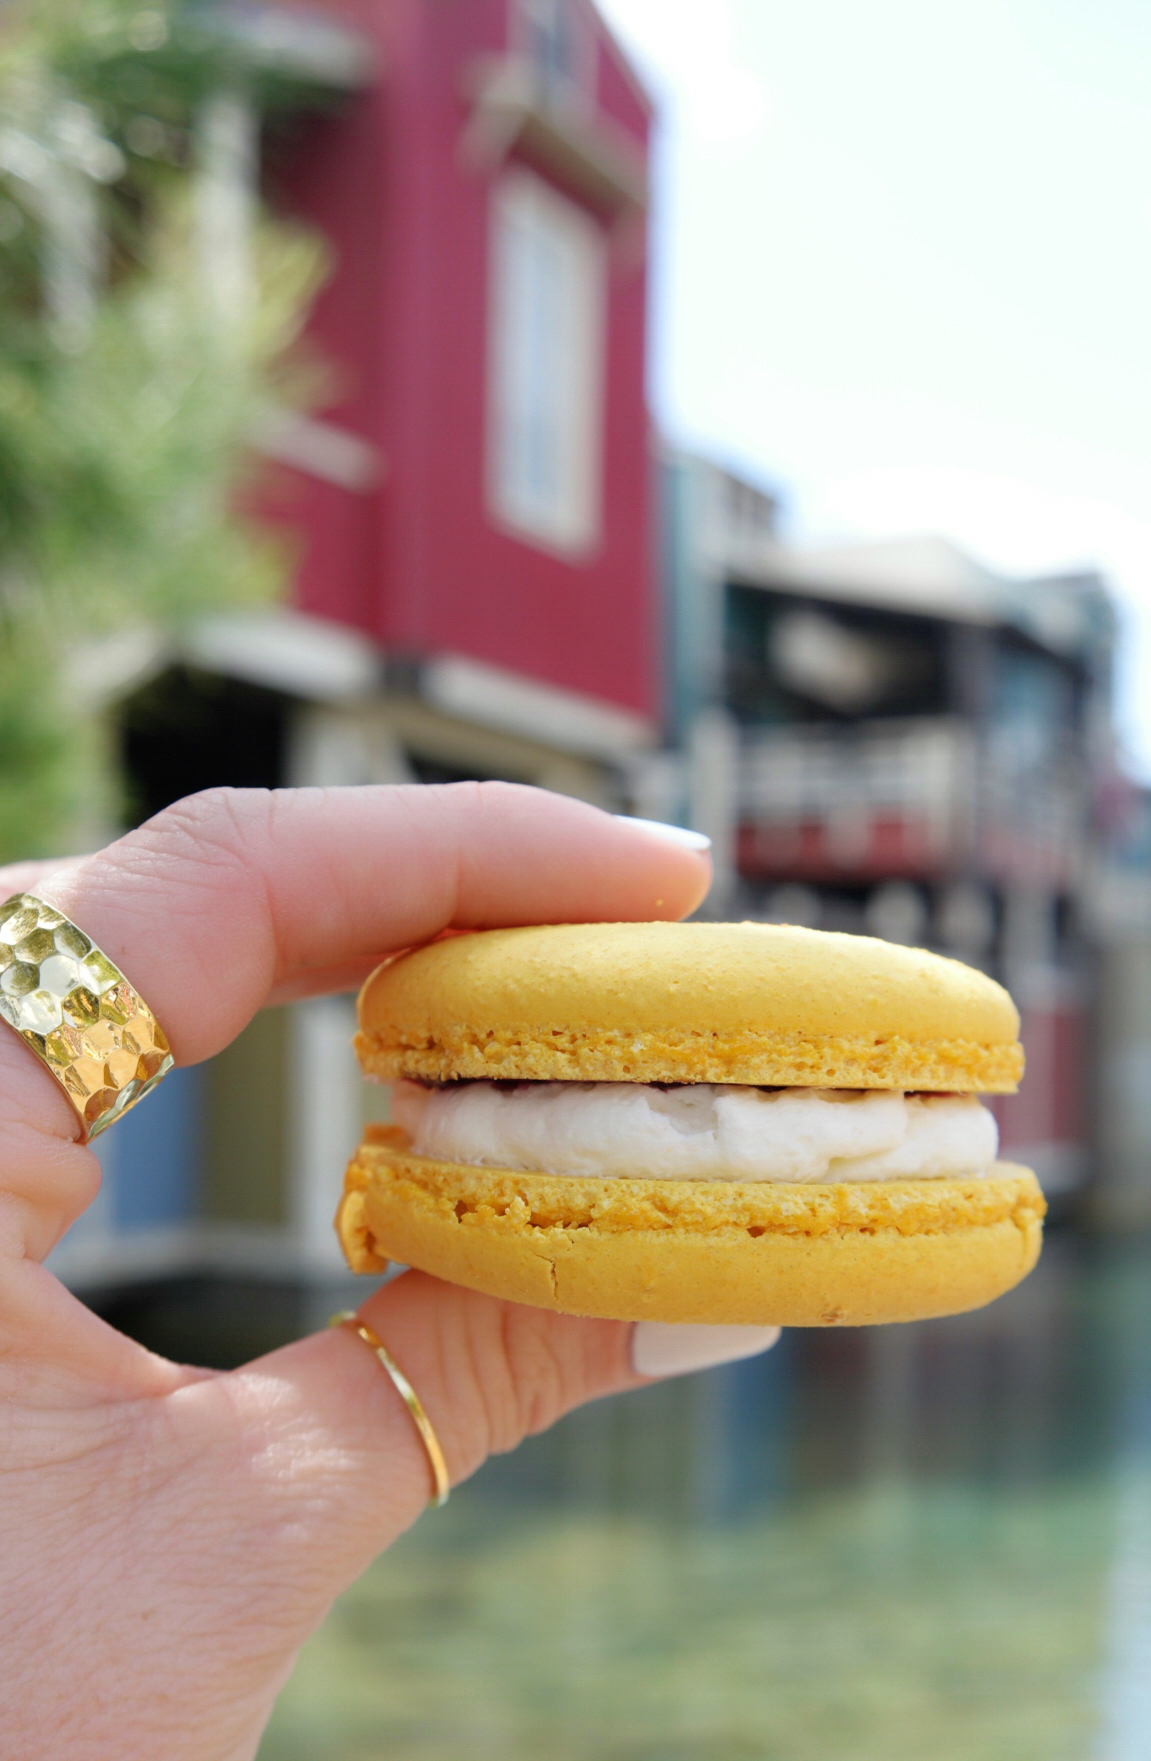 Meyer Lemon Macaron with a Blueberry Coulis Center